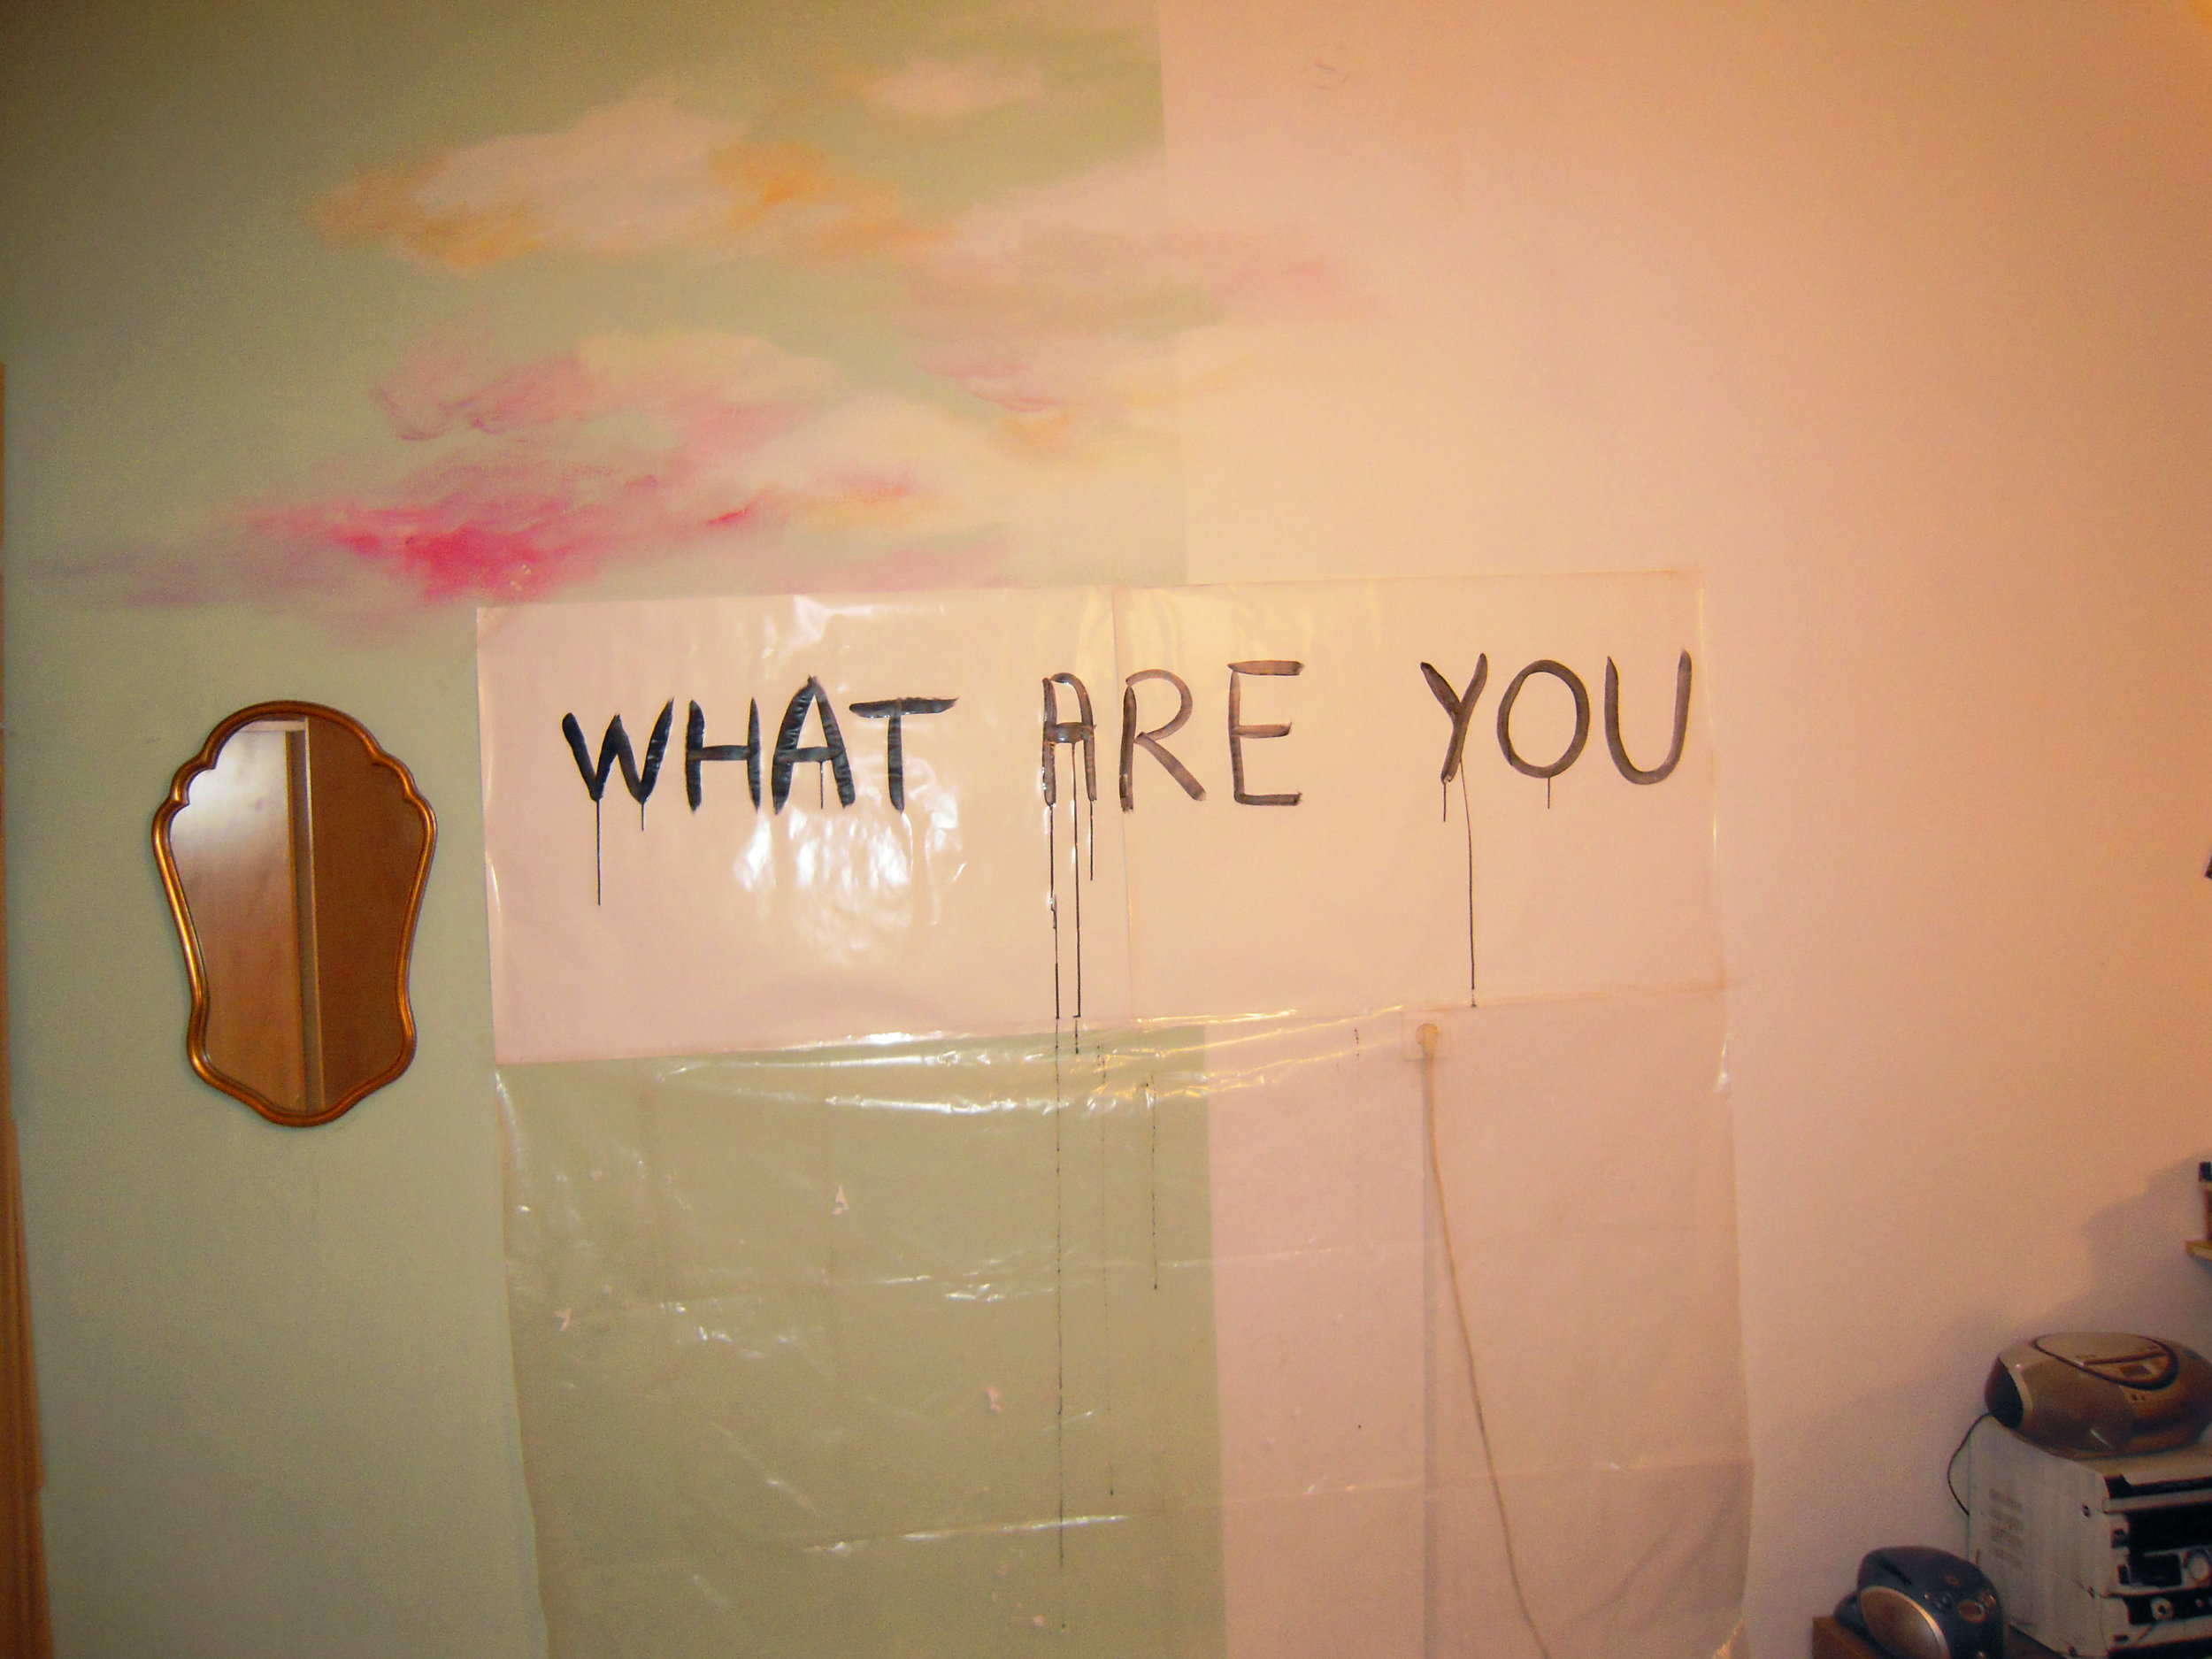 What are you, wallpaintg and installation, Ljubljana, 2015